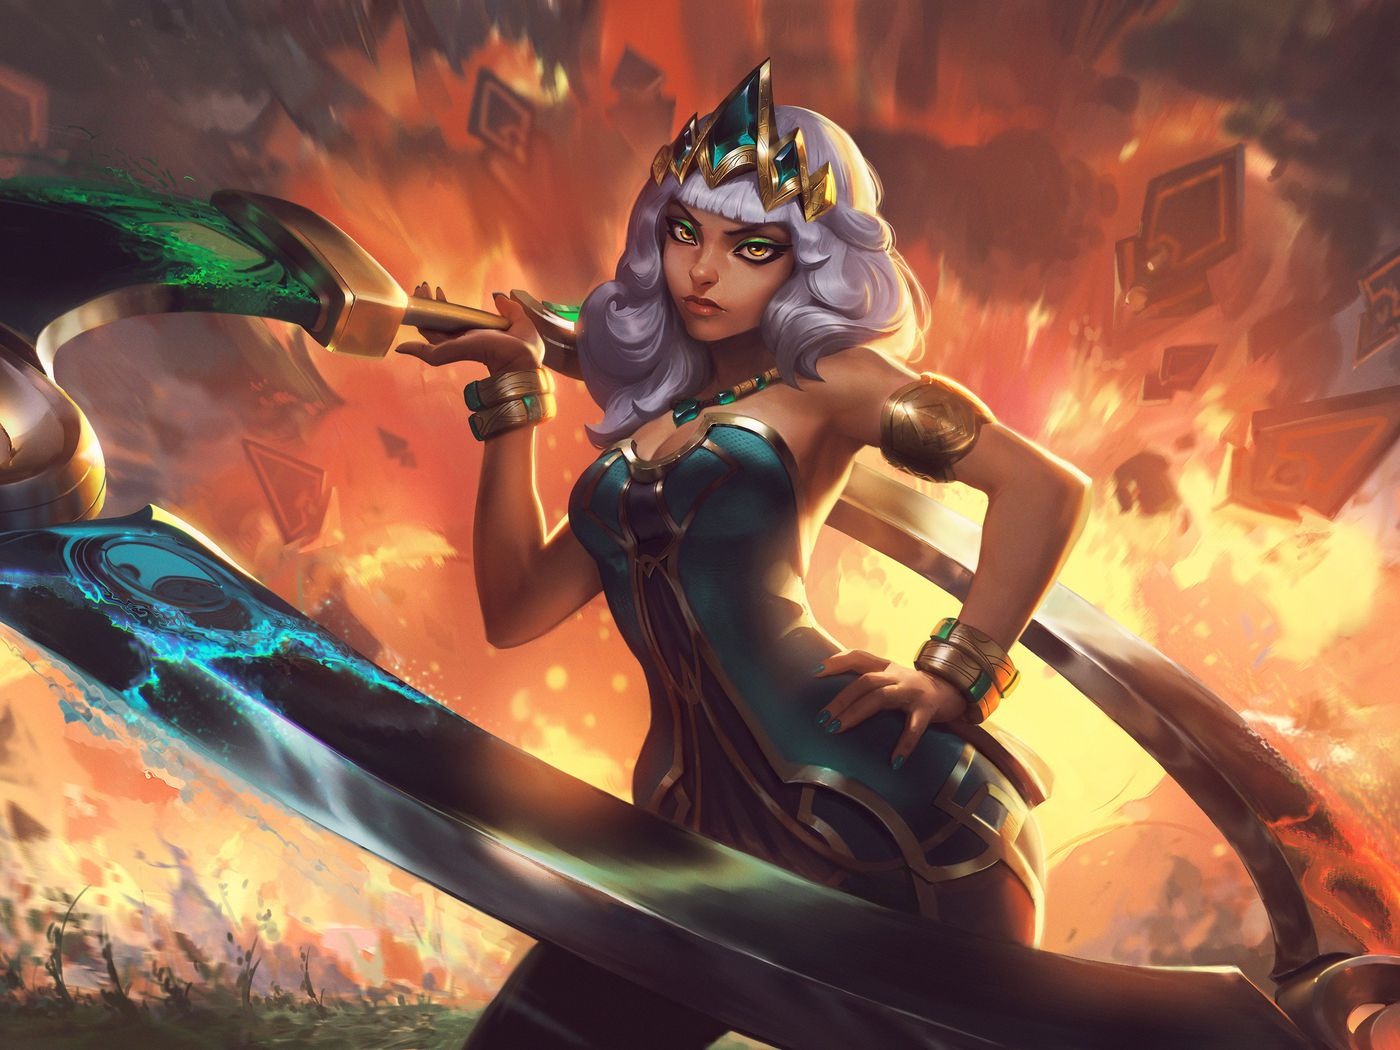 Qiyana champion guide: Collecting the elements - The Rift Herald